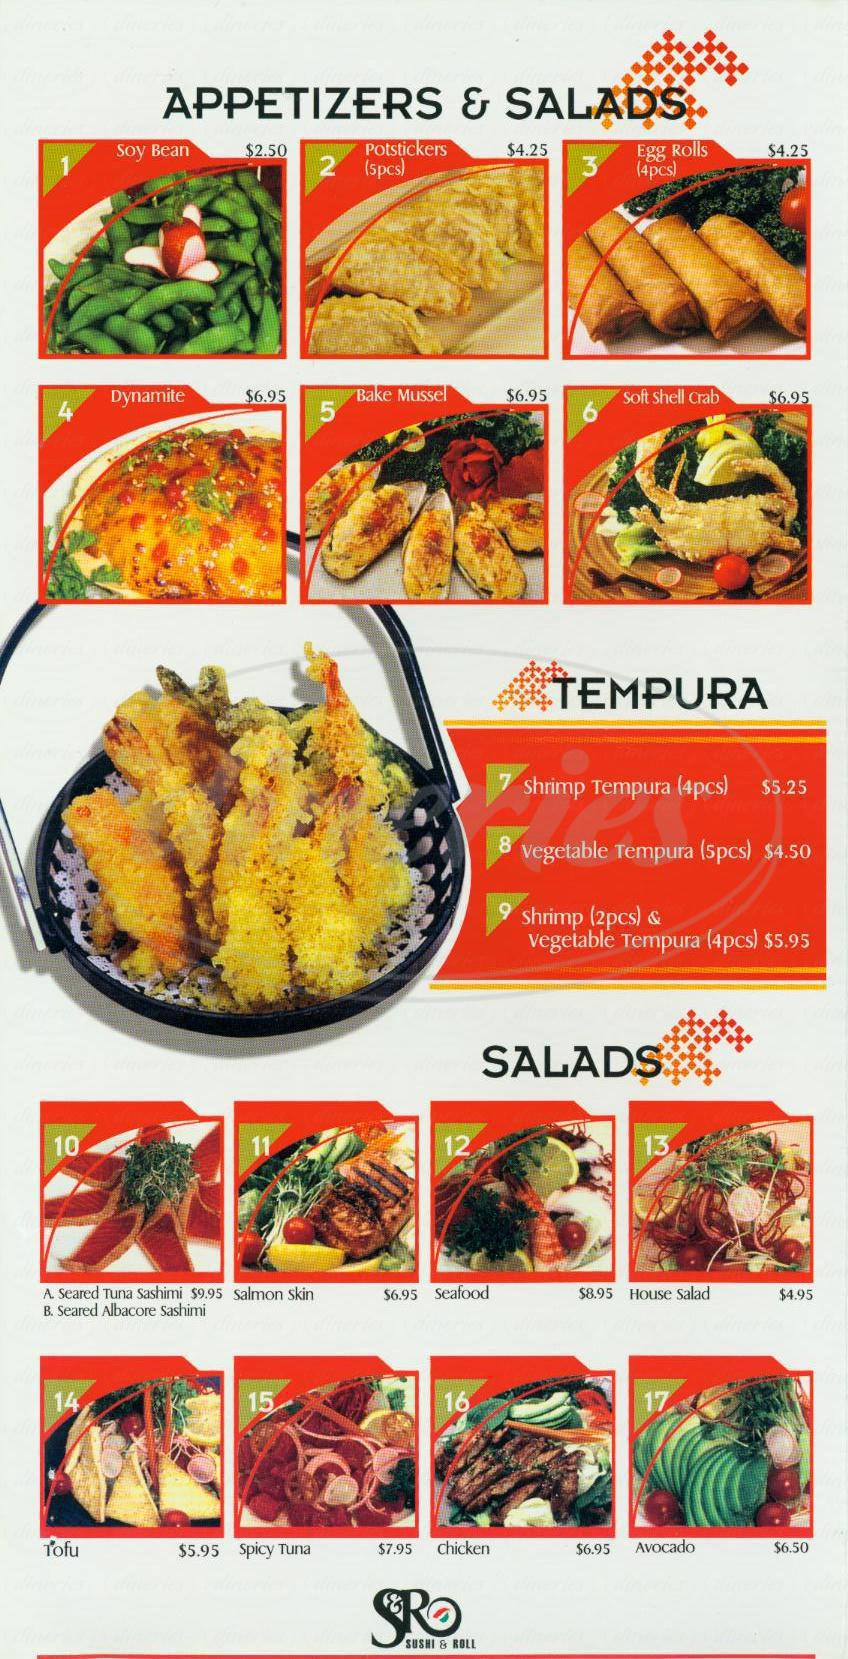 menu for S & R Sushi & Roll